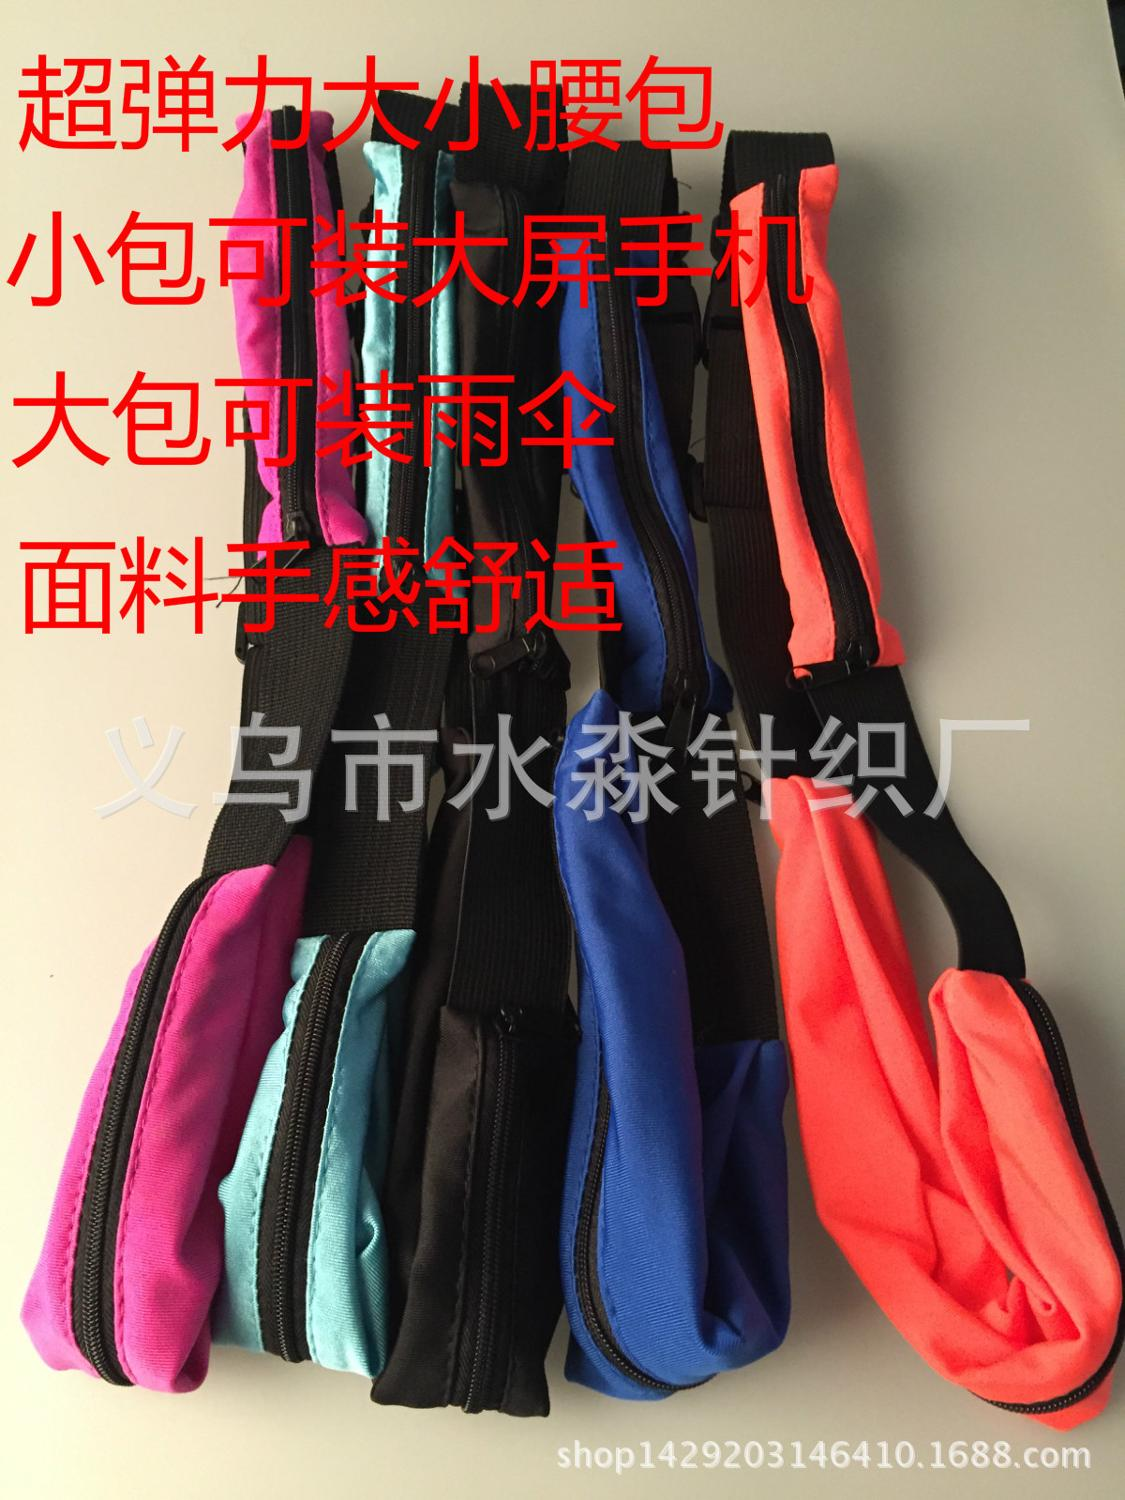 Whole Sale 200pcs lot Waist Bags with Double Pockets for Bottles and Umbrellas invisible running waist